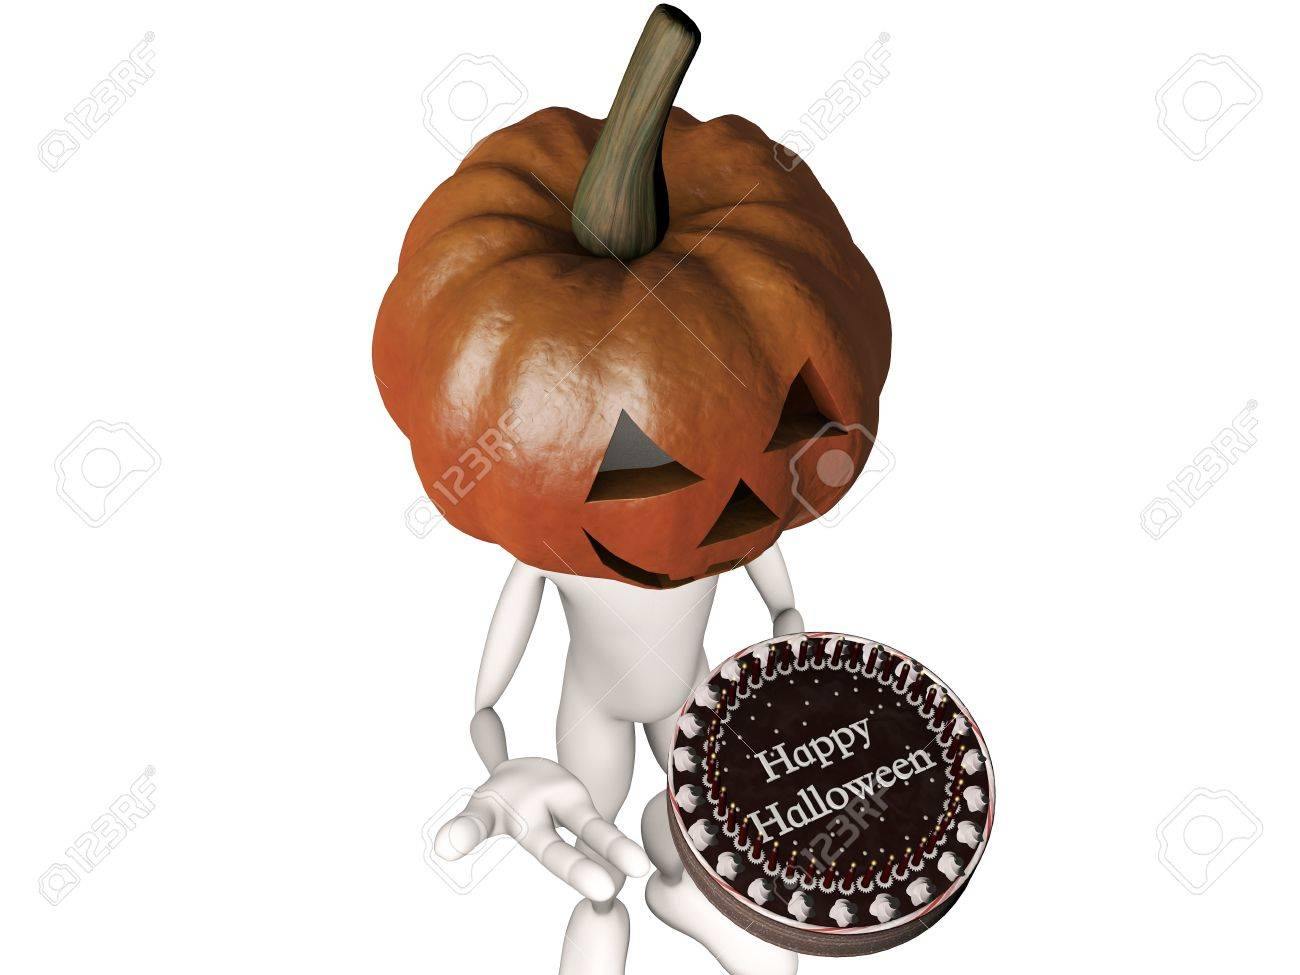 pumpkin man with a big cake say happy halloween stock photo 10747007 - Pictures That Say Happy Halloween